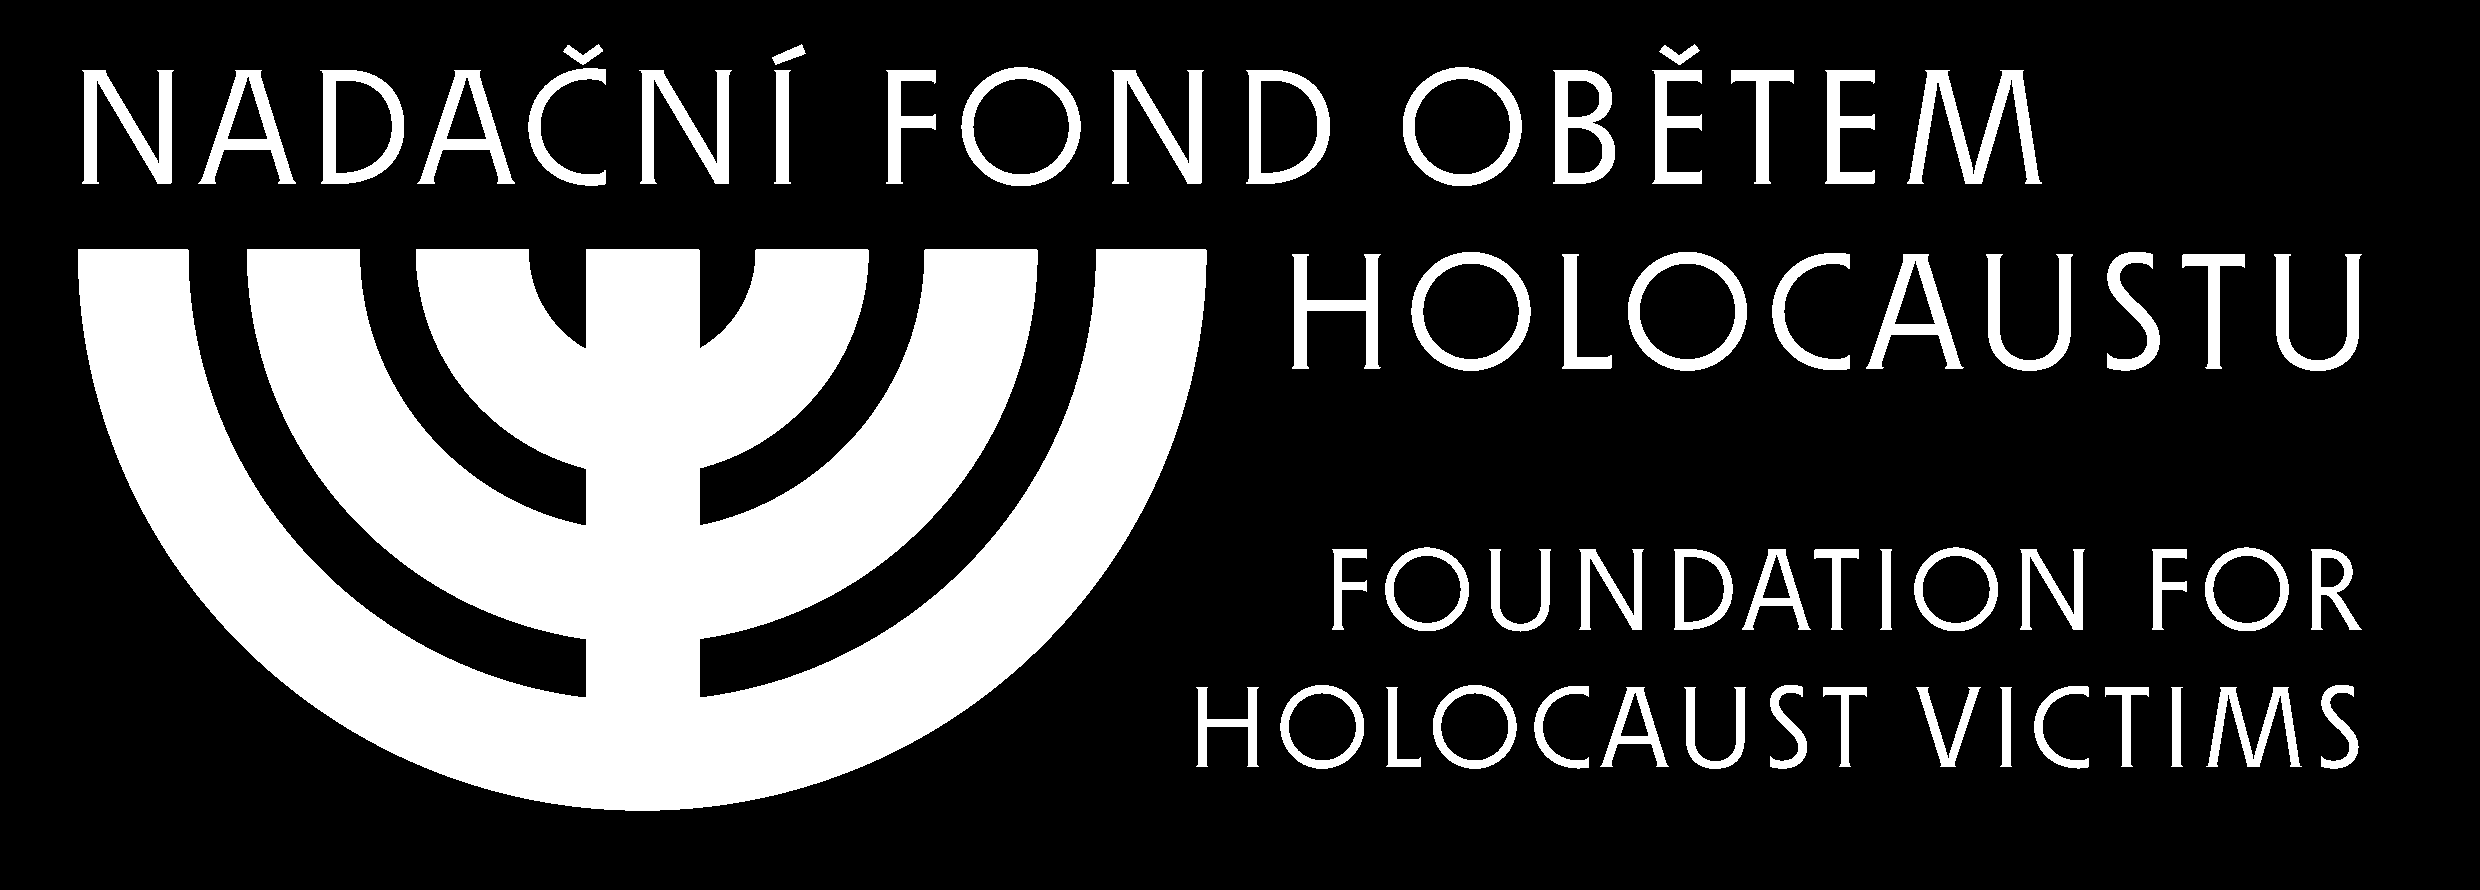 Foundation for holocaust victims